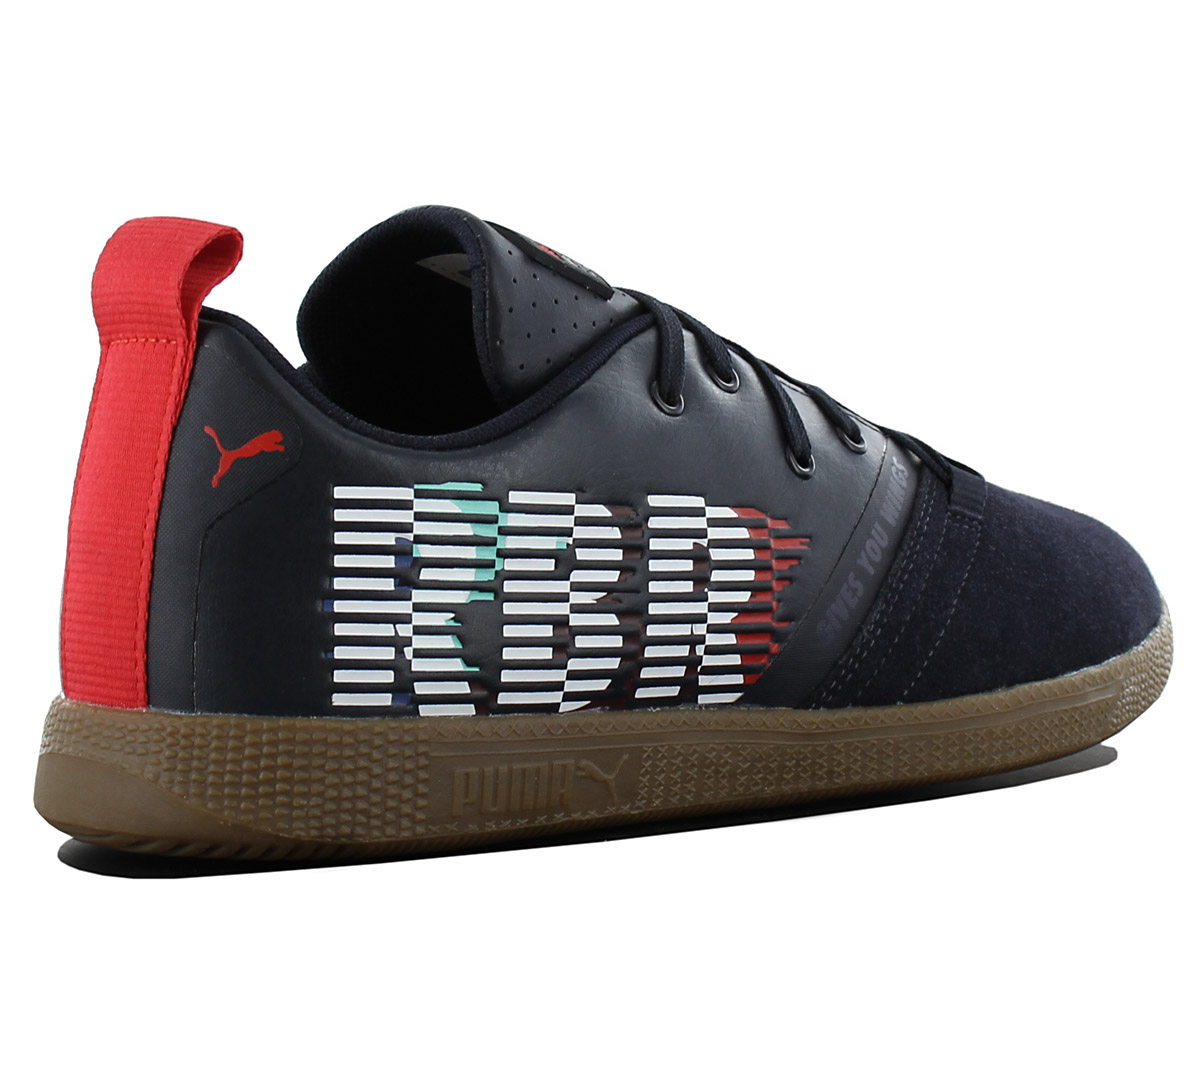 Details about Puma Red Bull Rbr Cups Lo Men's Sneaker Shoes Sneakers Blue 306185 01 New